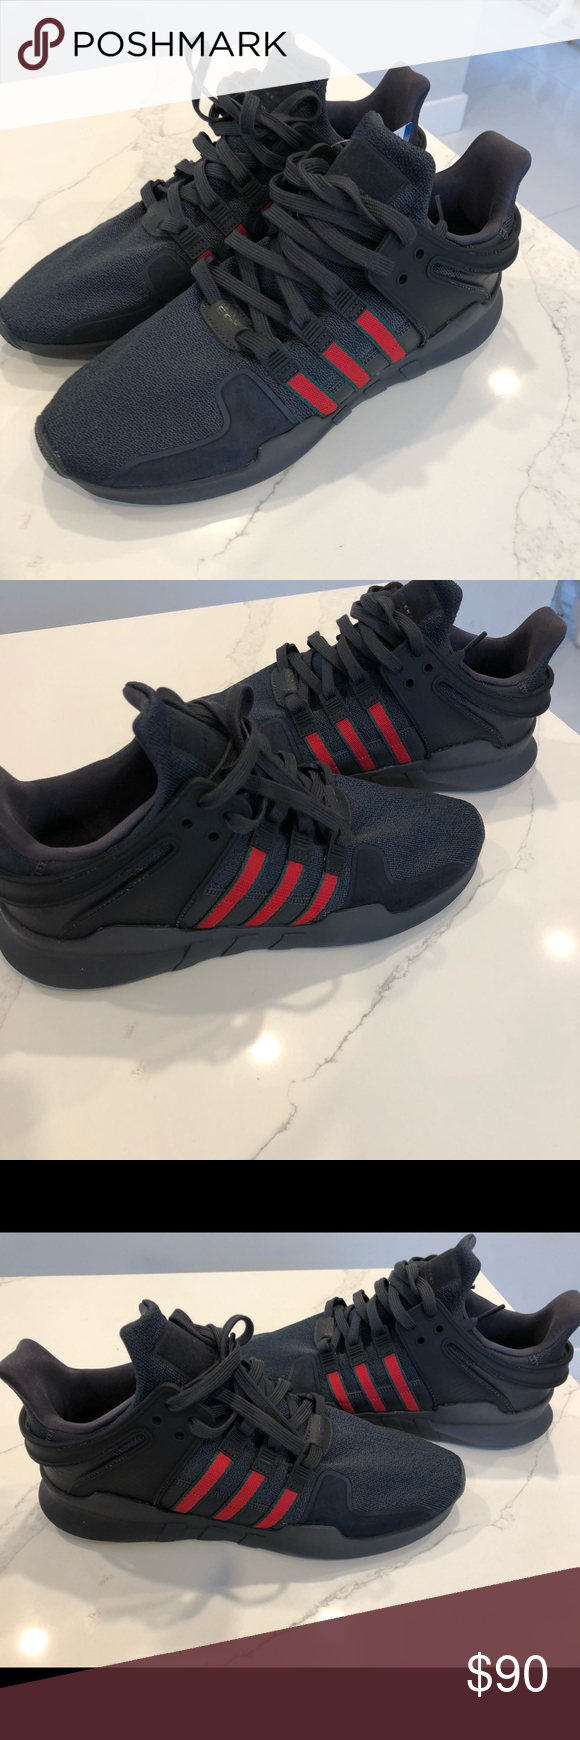 hot sale online bb65e 8ed33 Adidas EQT Support Adv Gucci Shoes Brand new with tags ...